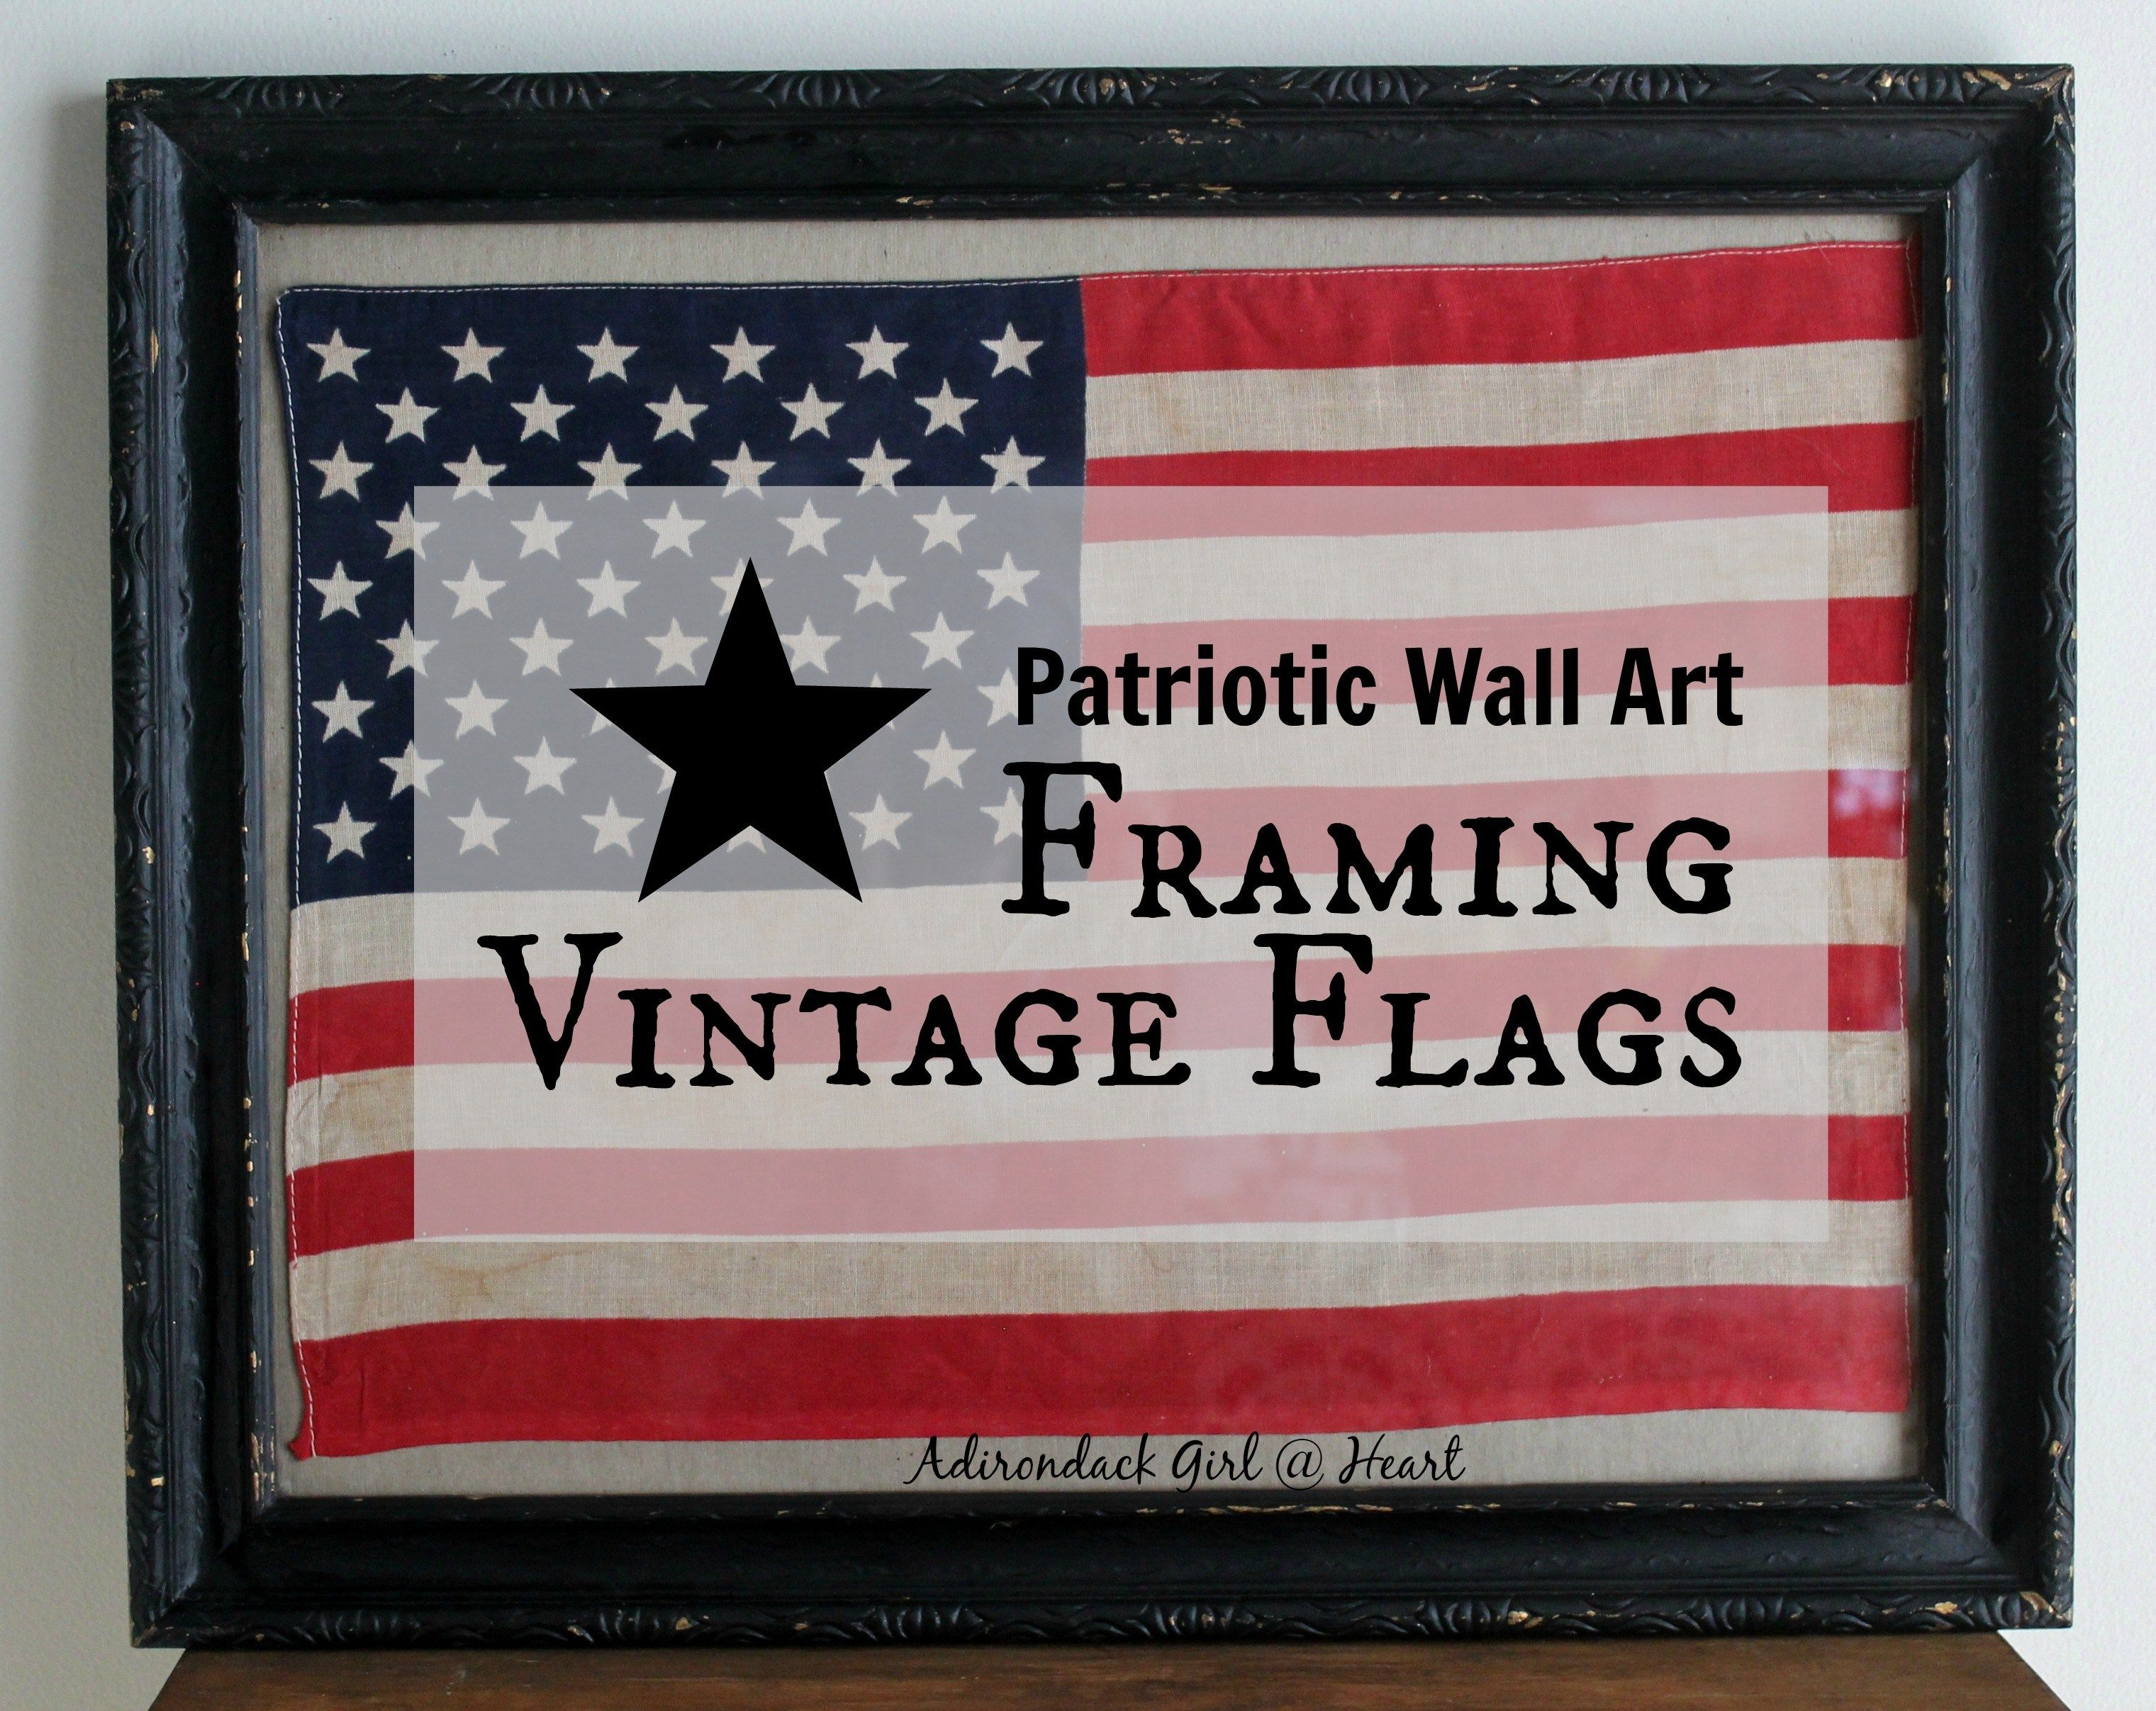 Patriotic Wall Art: Framing Vintage Flags